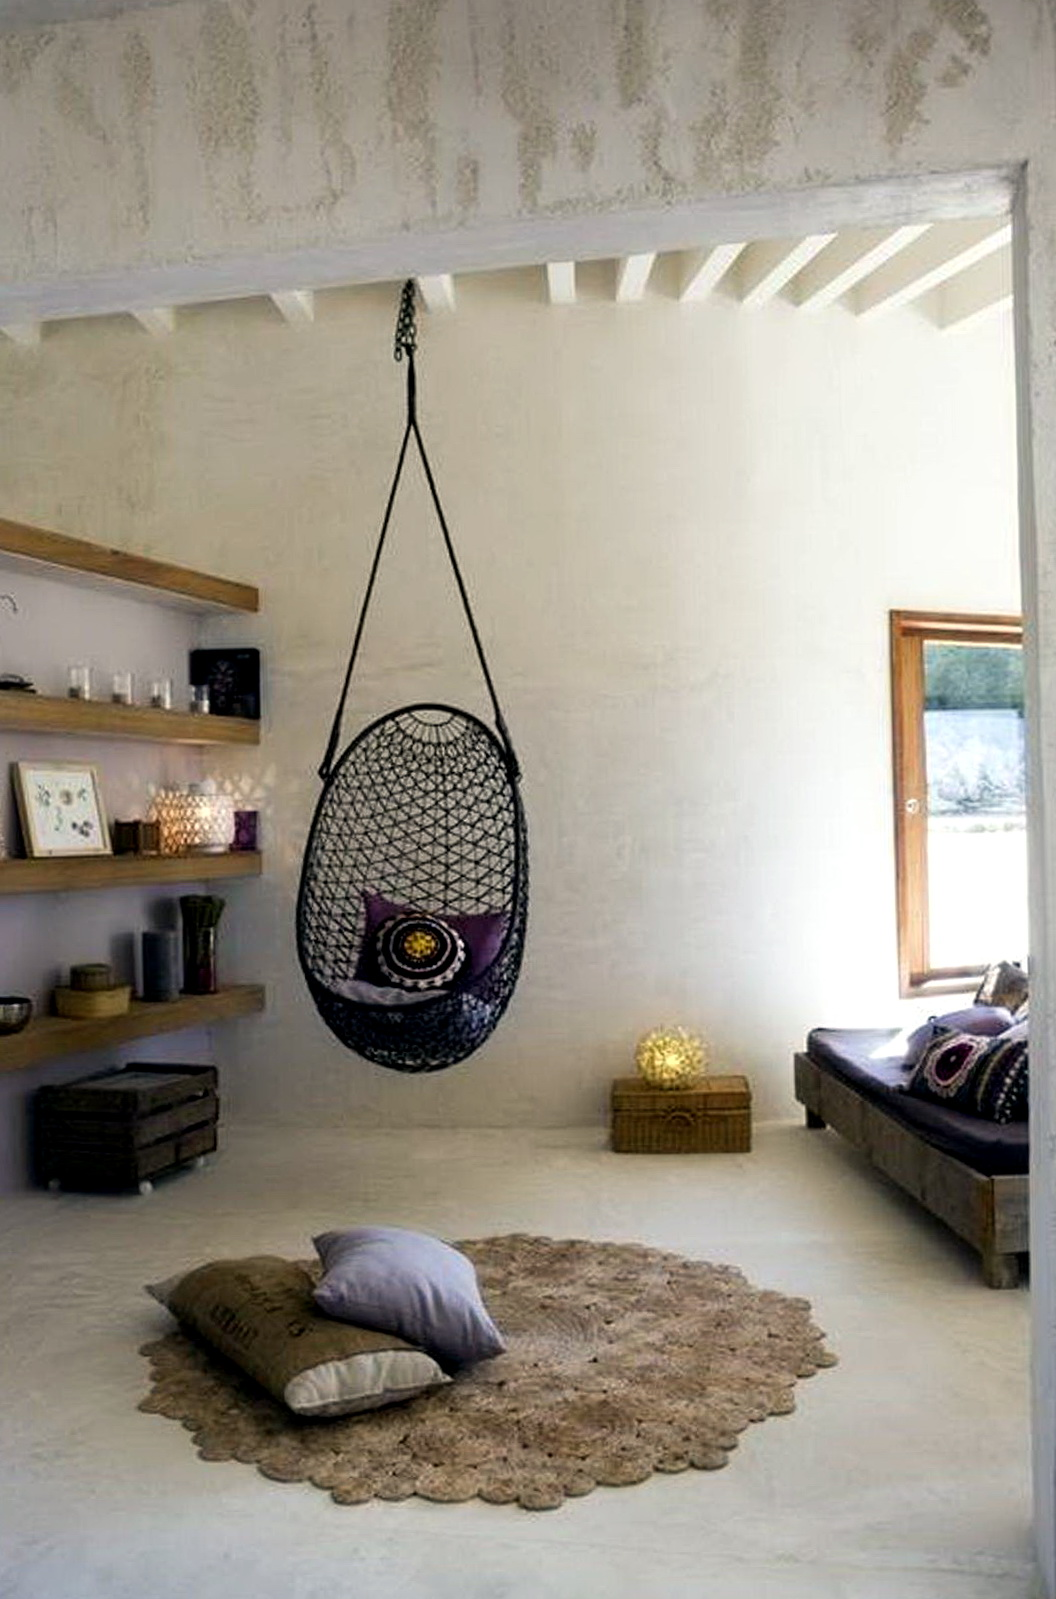 Hanging Chair For Bedroom For Sale